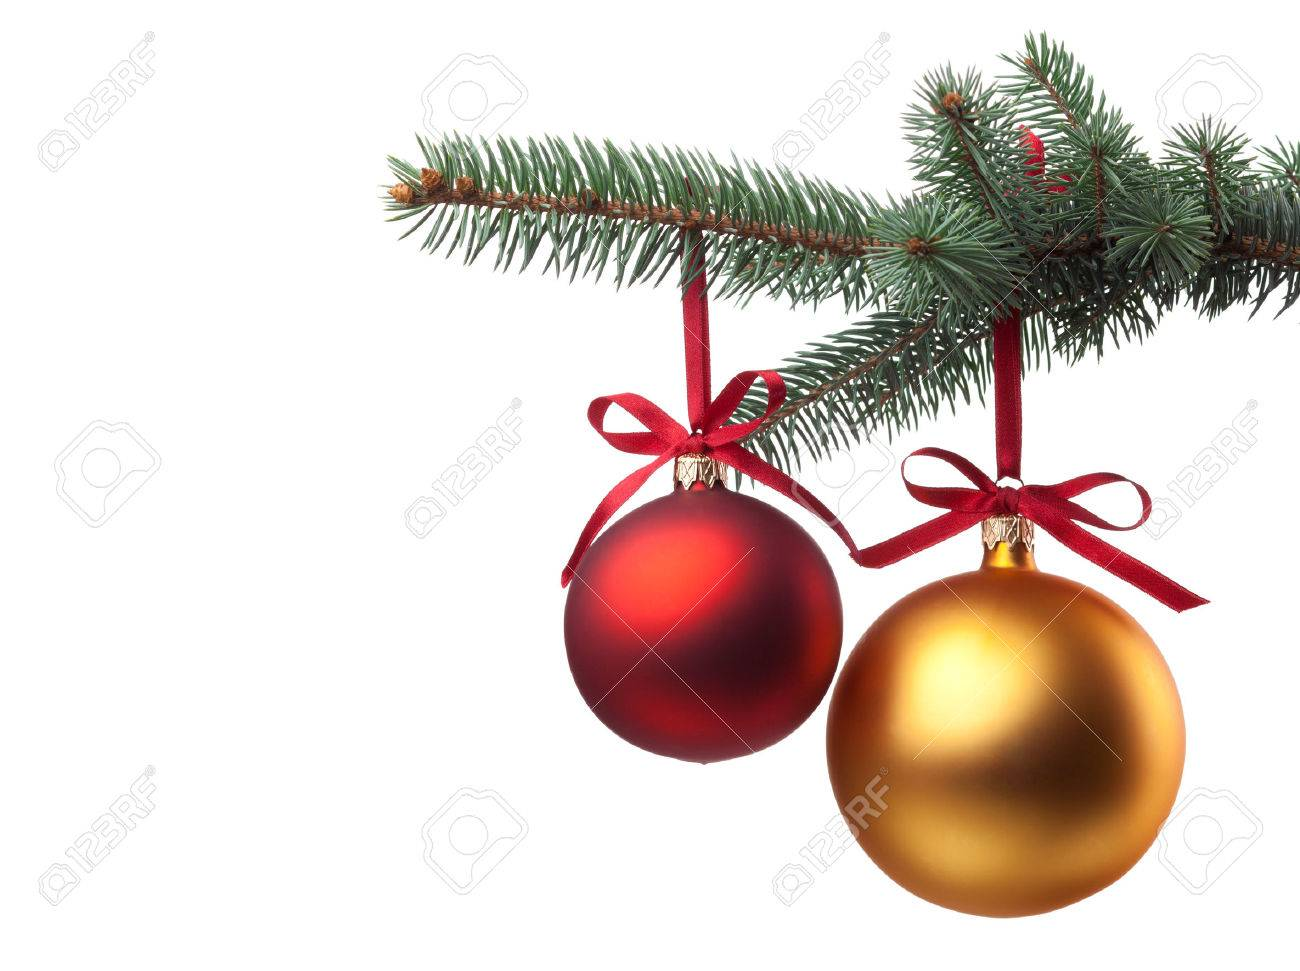 Christmas Baubles.Christmas Baubles With Curly Ribbon On Christmas Tree Isolated